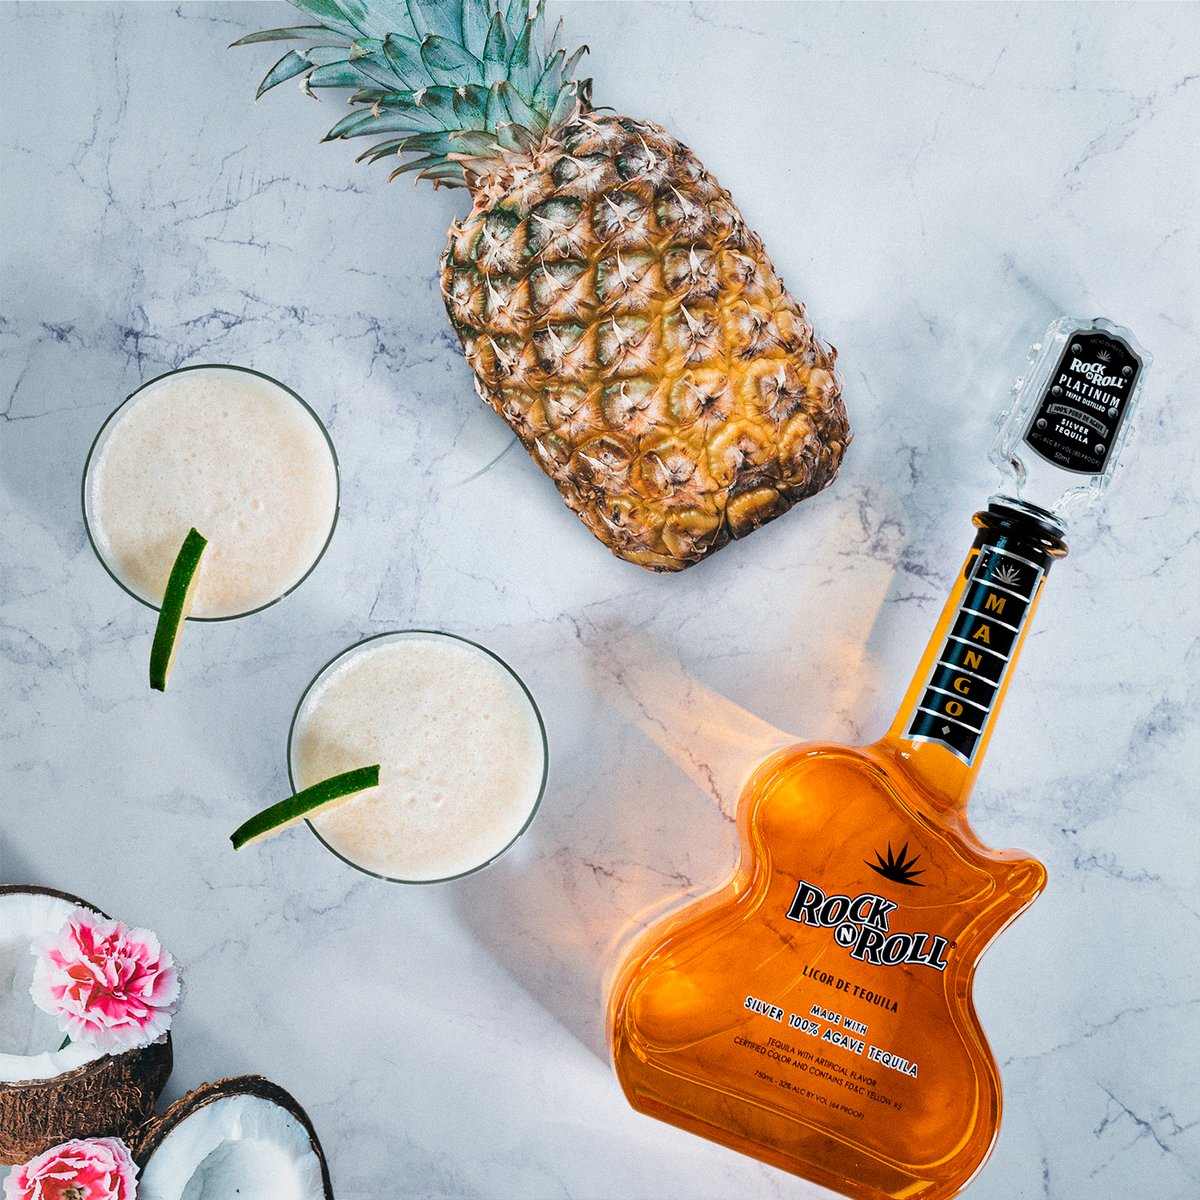 IF YOU LIKE PIÑA COLADAS… Then you're gonna love this recipe.⁣  Recipe:⁣ - 2.5 ounces Mango Rock N Roll Tequila⁣ - 1 cup of ice⁣ - 1/2 cup of diced pineapple⁣ - 2 ounces pineapple juice⁣ - 2 ounces coconut cream⁣ - 1 ounce simple syrup⁣ - .5 ounce fresh squeezed lime⁣ https://t.co/aQt4TTTwSj